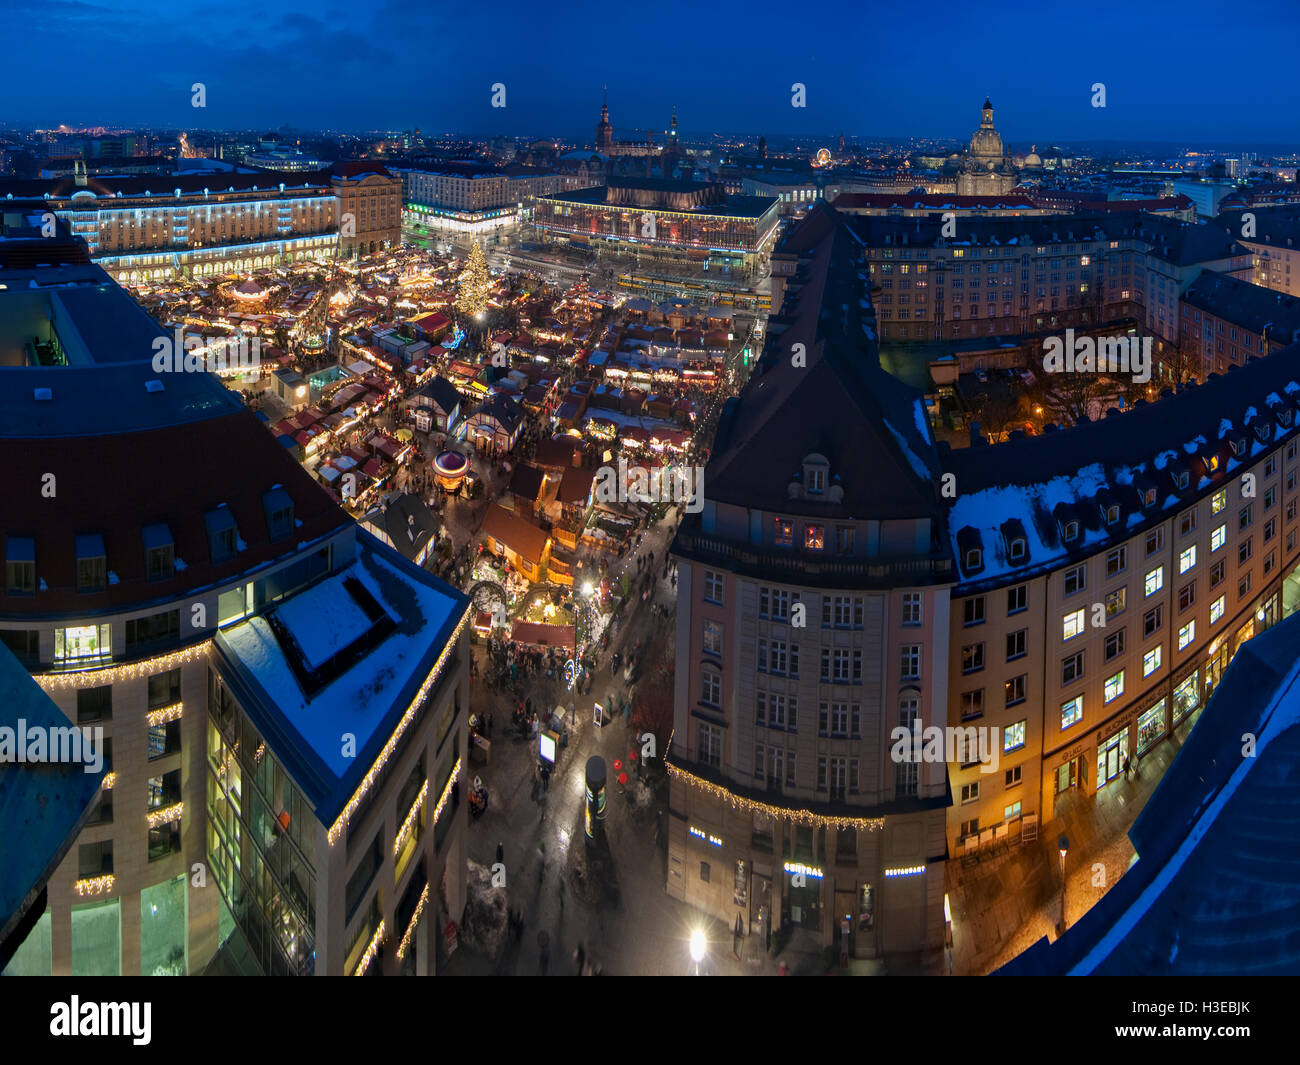 striezelmarkt christmas market in dresden stockfotos. Black Bedroom Furniture Sets. Home Design Ideas